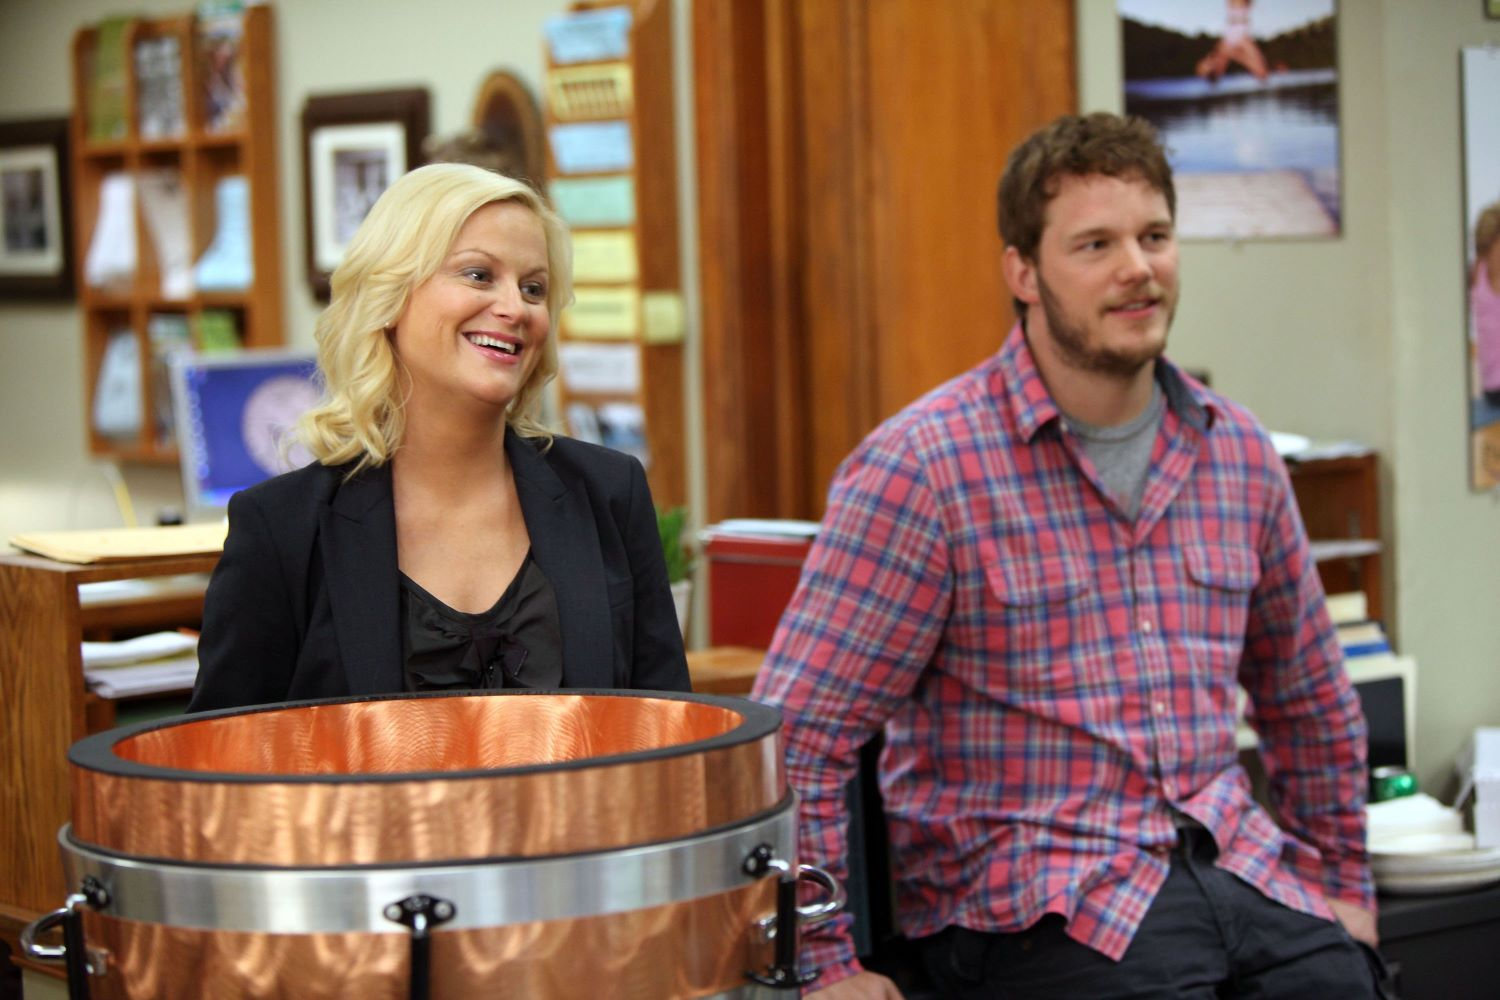 Amy Poehler and Chriss Pratt on 'Parks and Recreation'